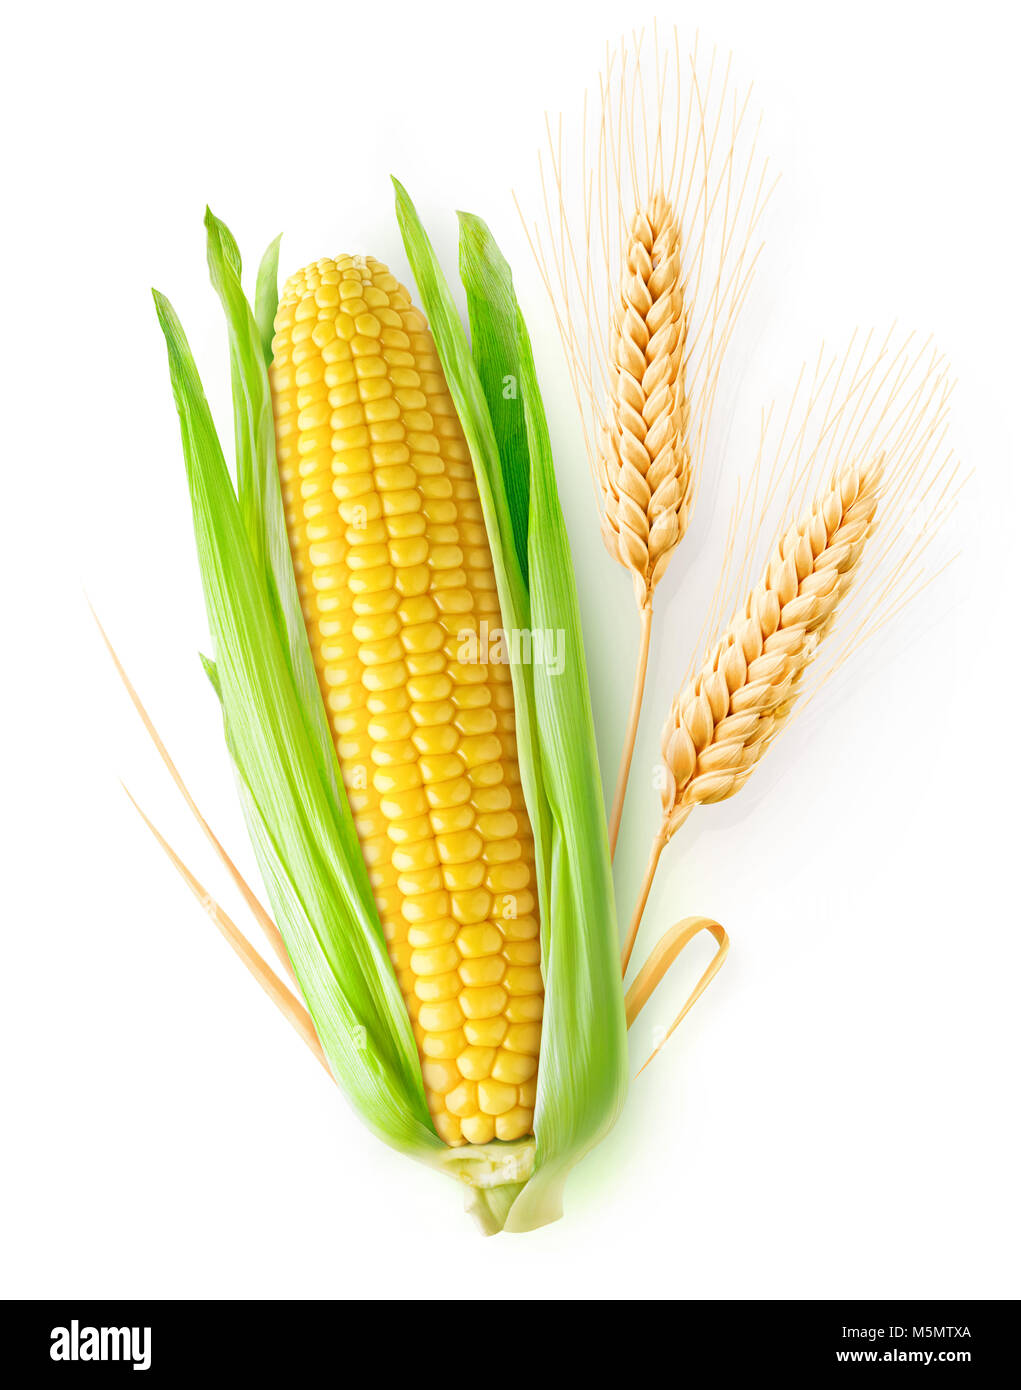 Isolated cereals. One ear of corn and two ears of wheat with leaves isolated on white background with clipping path - Stock Image